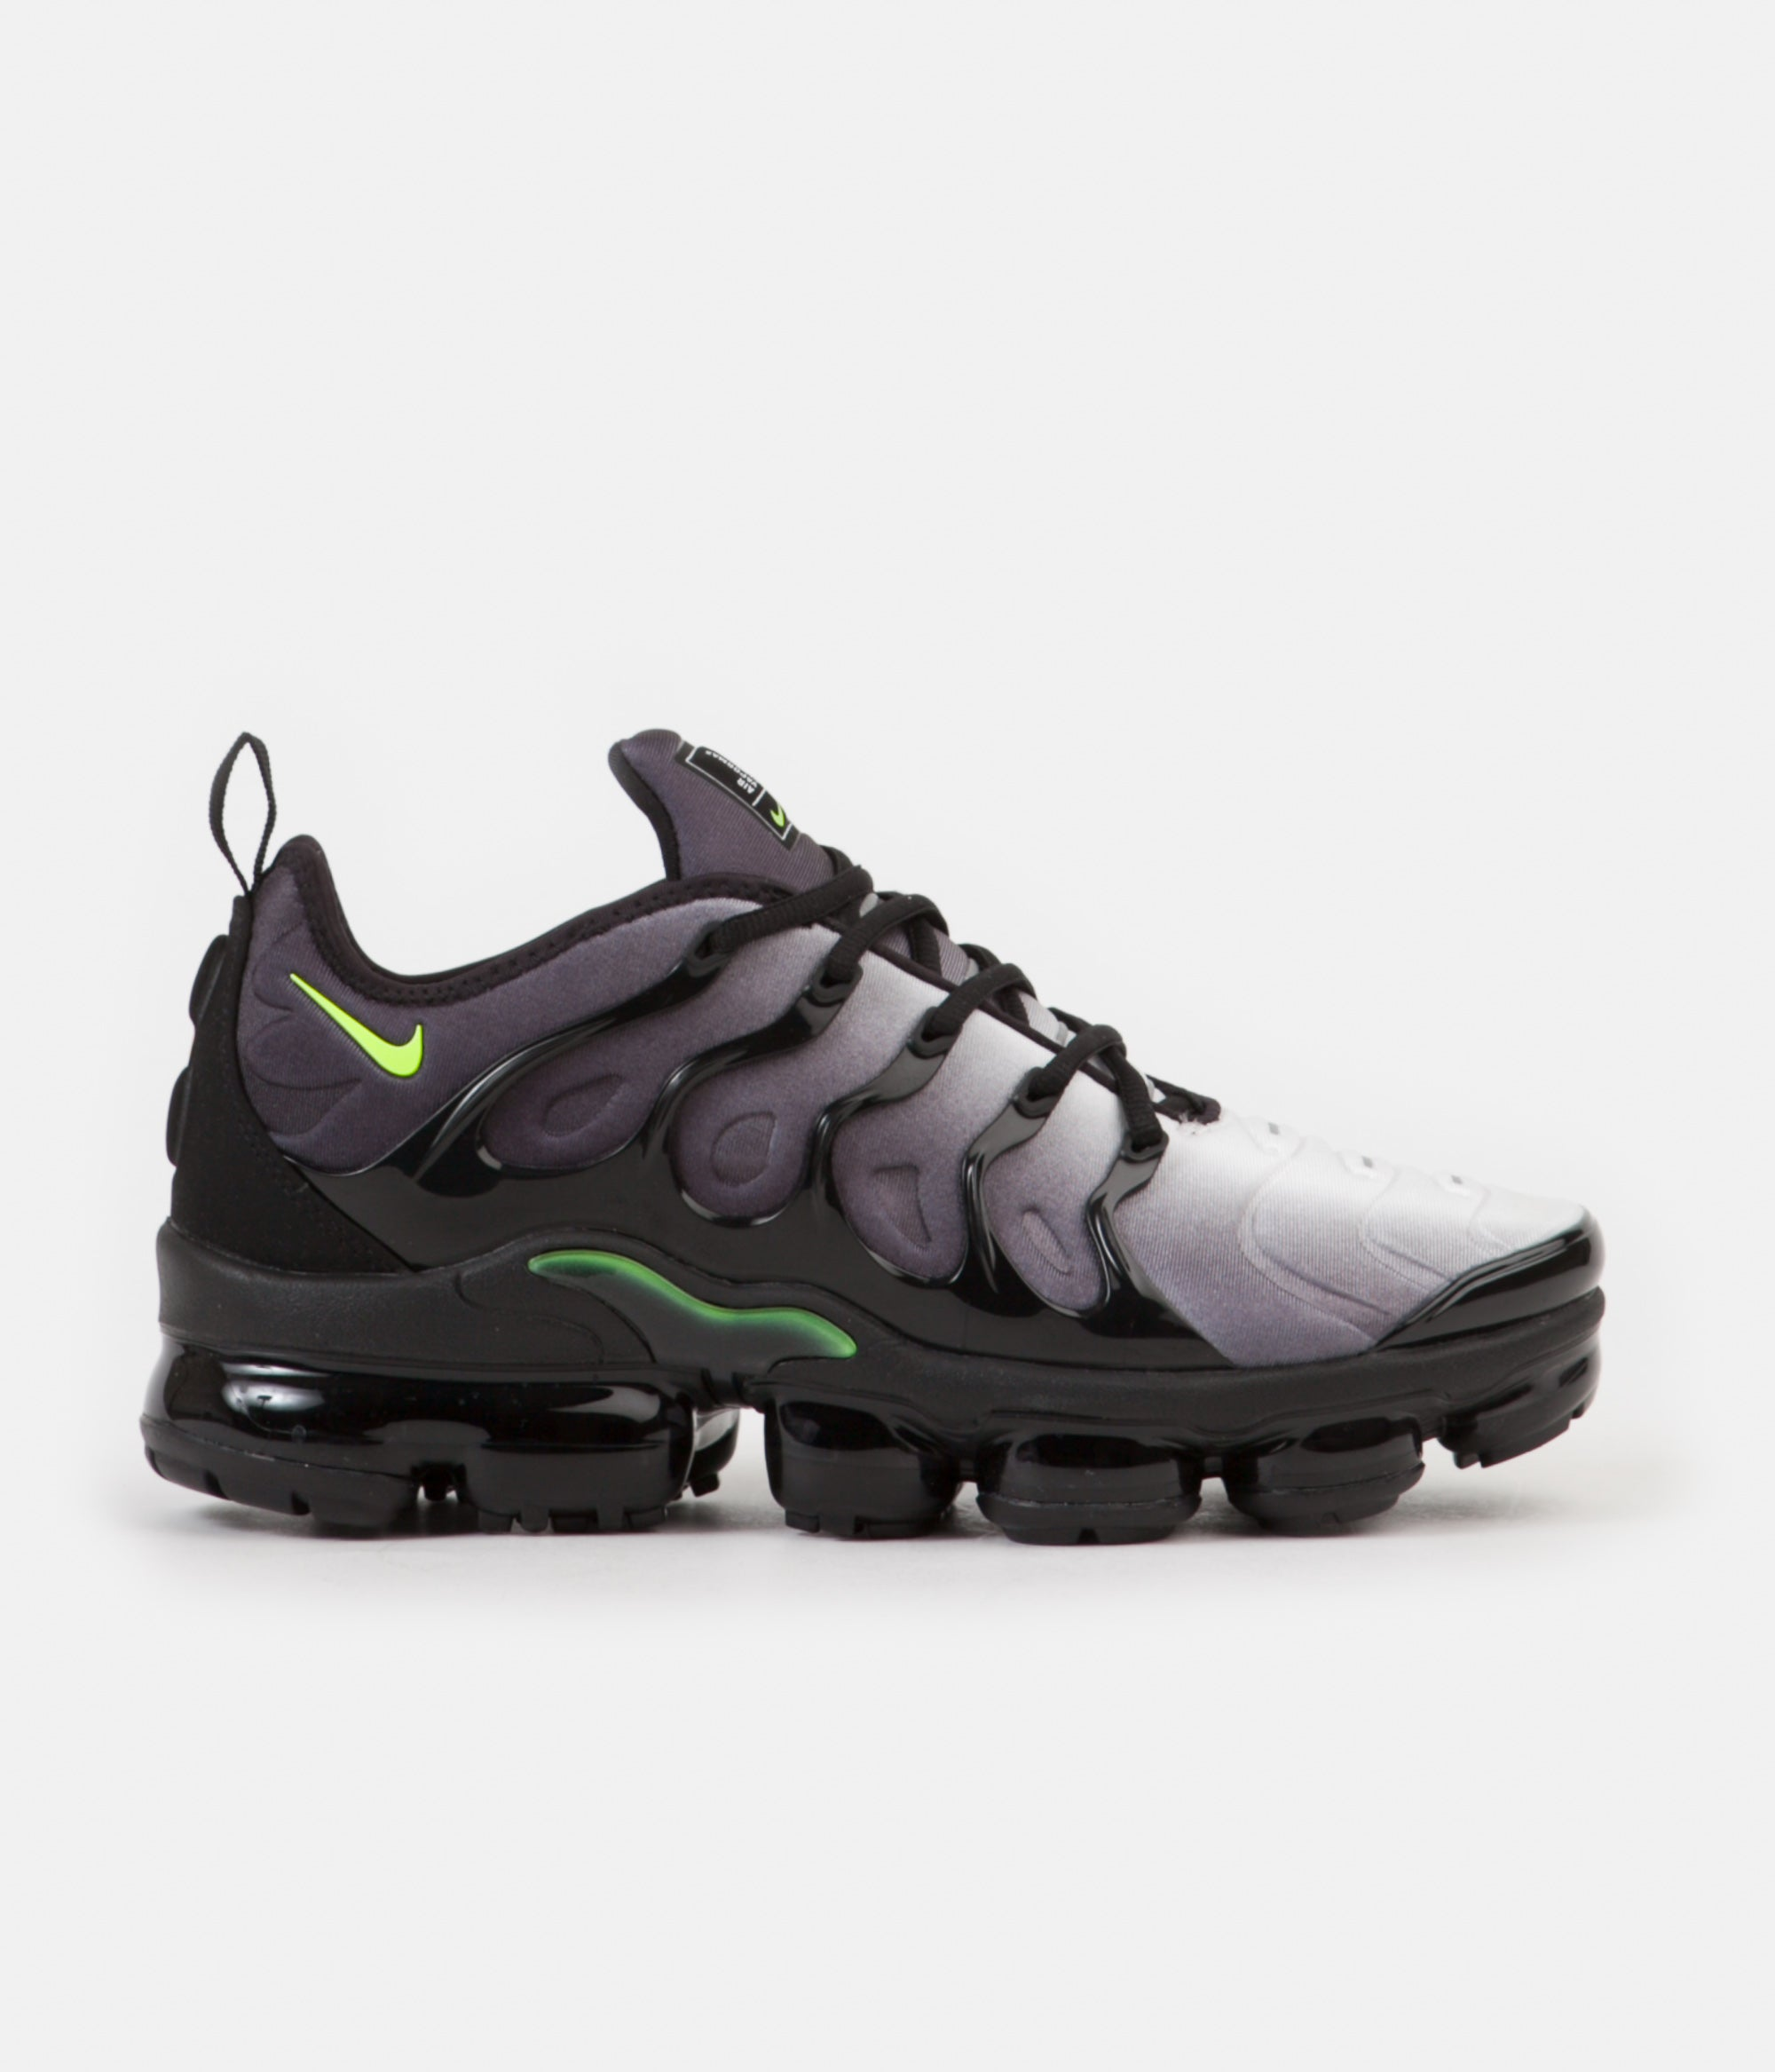 a28add9c23169 ... Nike Air VaporMax Plus Shoes - Black   Volt - White ...